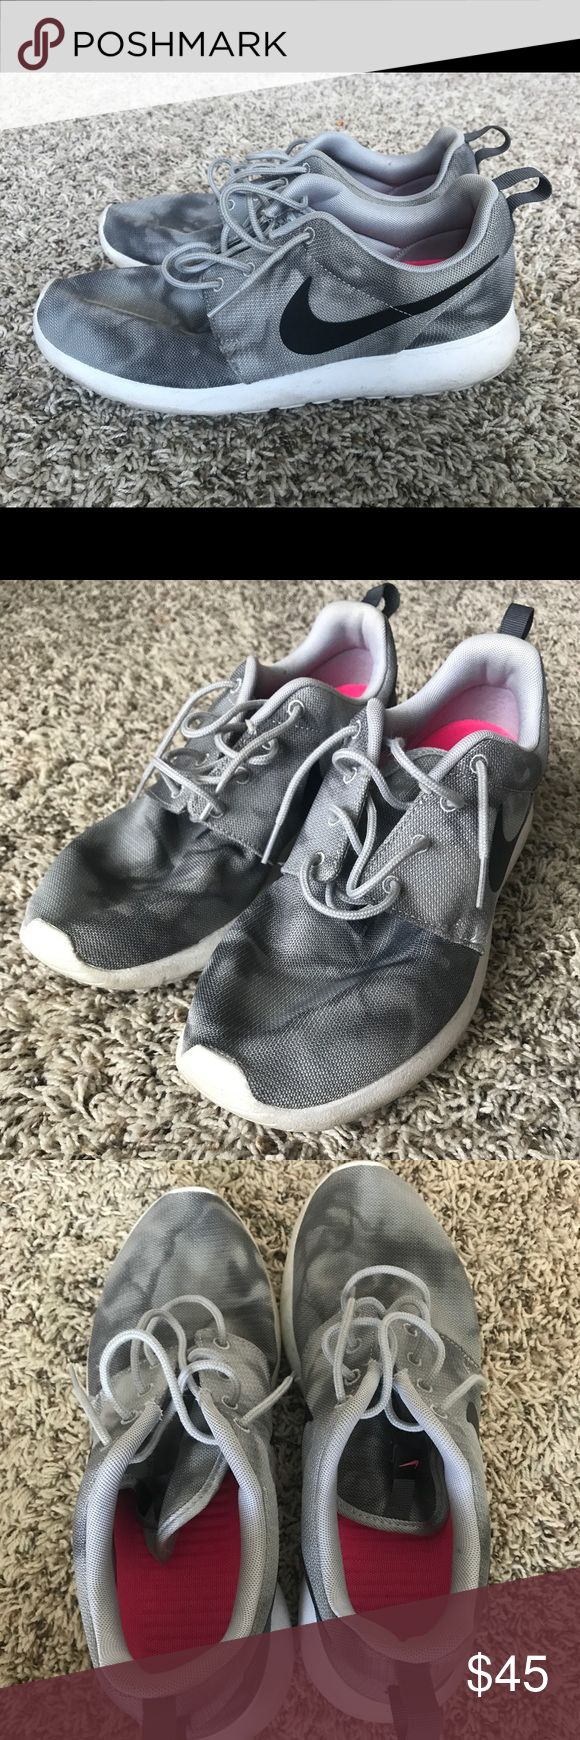 """Nike Roshe Run Grey Camo $45 or best offer. I barely wore these. I've had them in my closet for about 3 years just collecting dust. They aren't """"brand new"""" but they're gently worn and in pretty good shape, in my opinion. I can definitely clean these up for the buyer before shipping them out. Nike Shoes Athletic Shoes"""